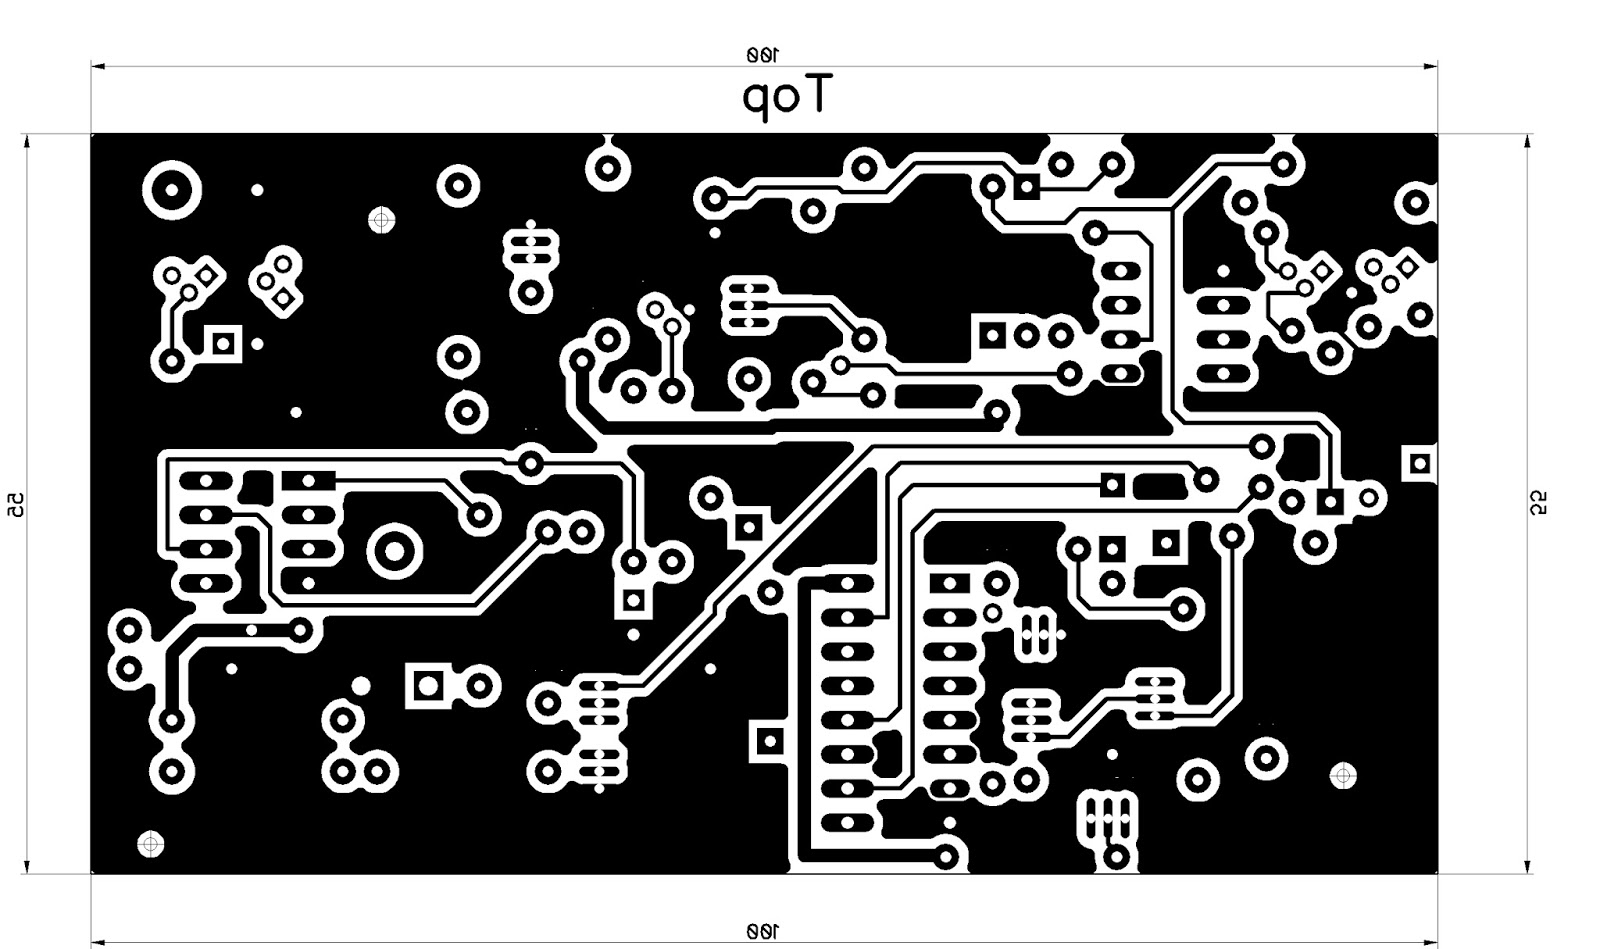 Alien Transducer Double Sided Pcb Tutorial Circuitboards Living Room Things Pinterest Printed Circuit The Diagram Is Created Using Diptrace I Find It Much Easier To Use Than Eagle You Can Print Directly From But Prefer Exporting Top